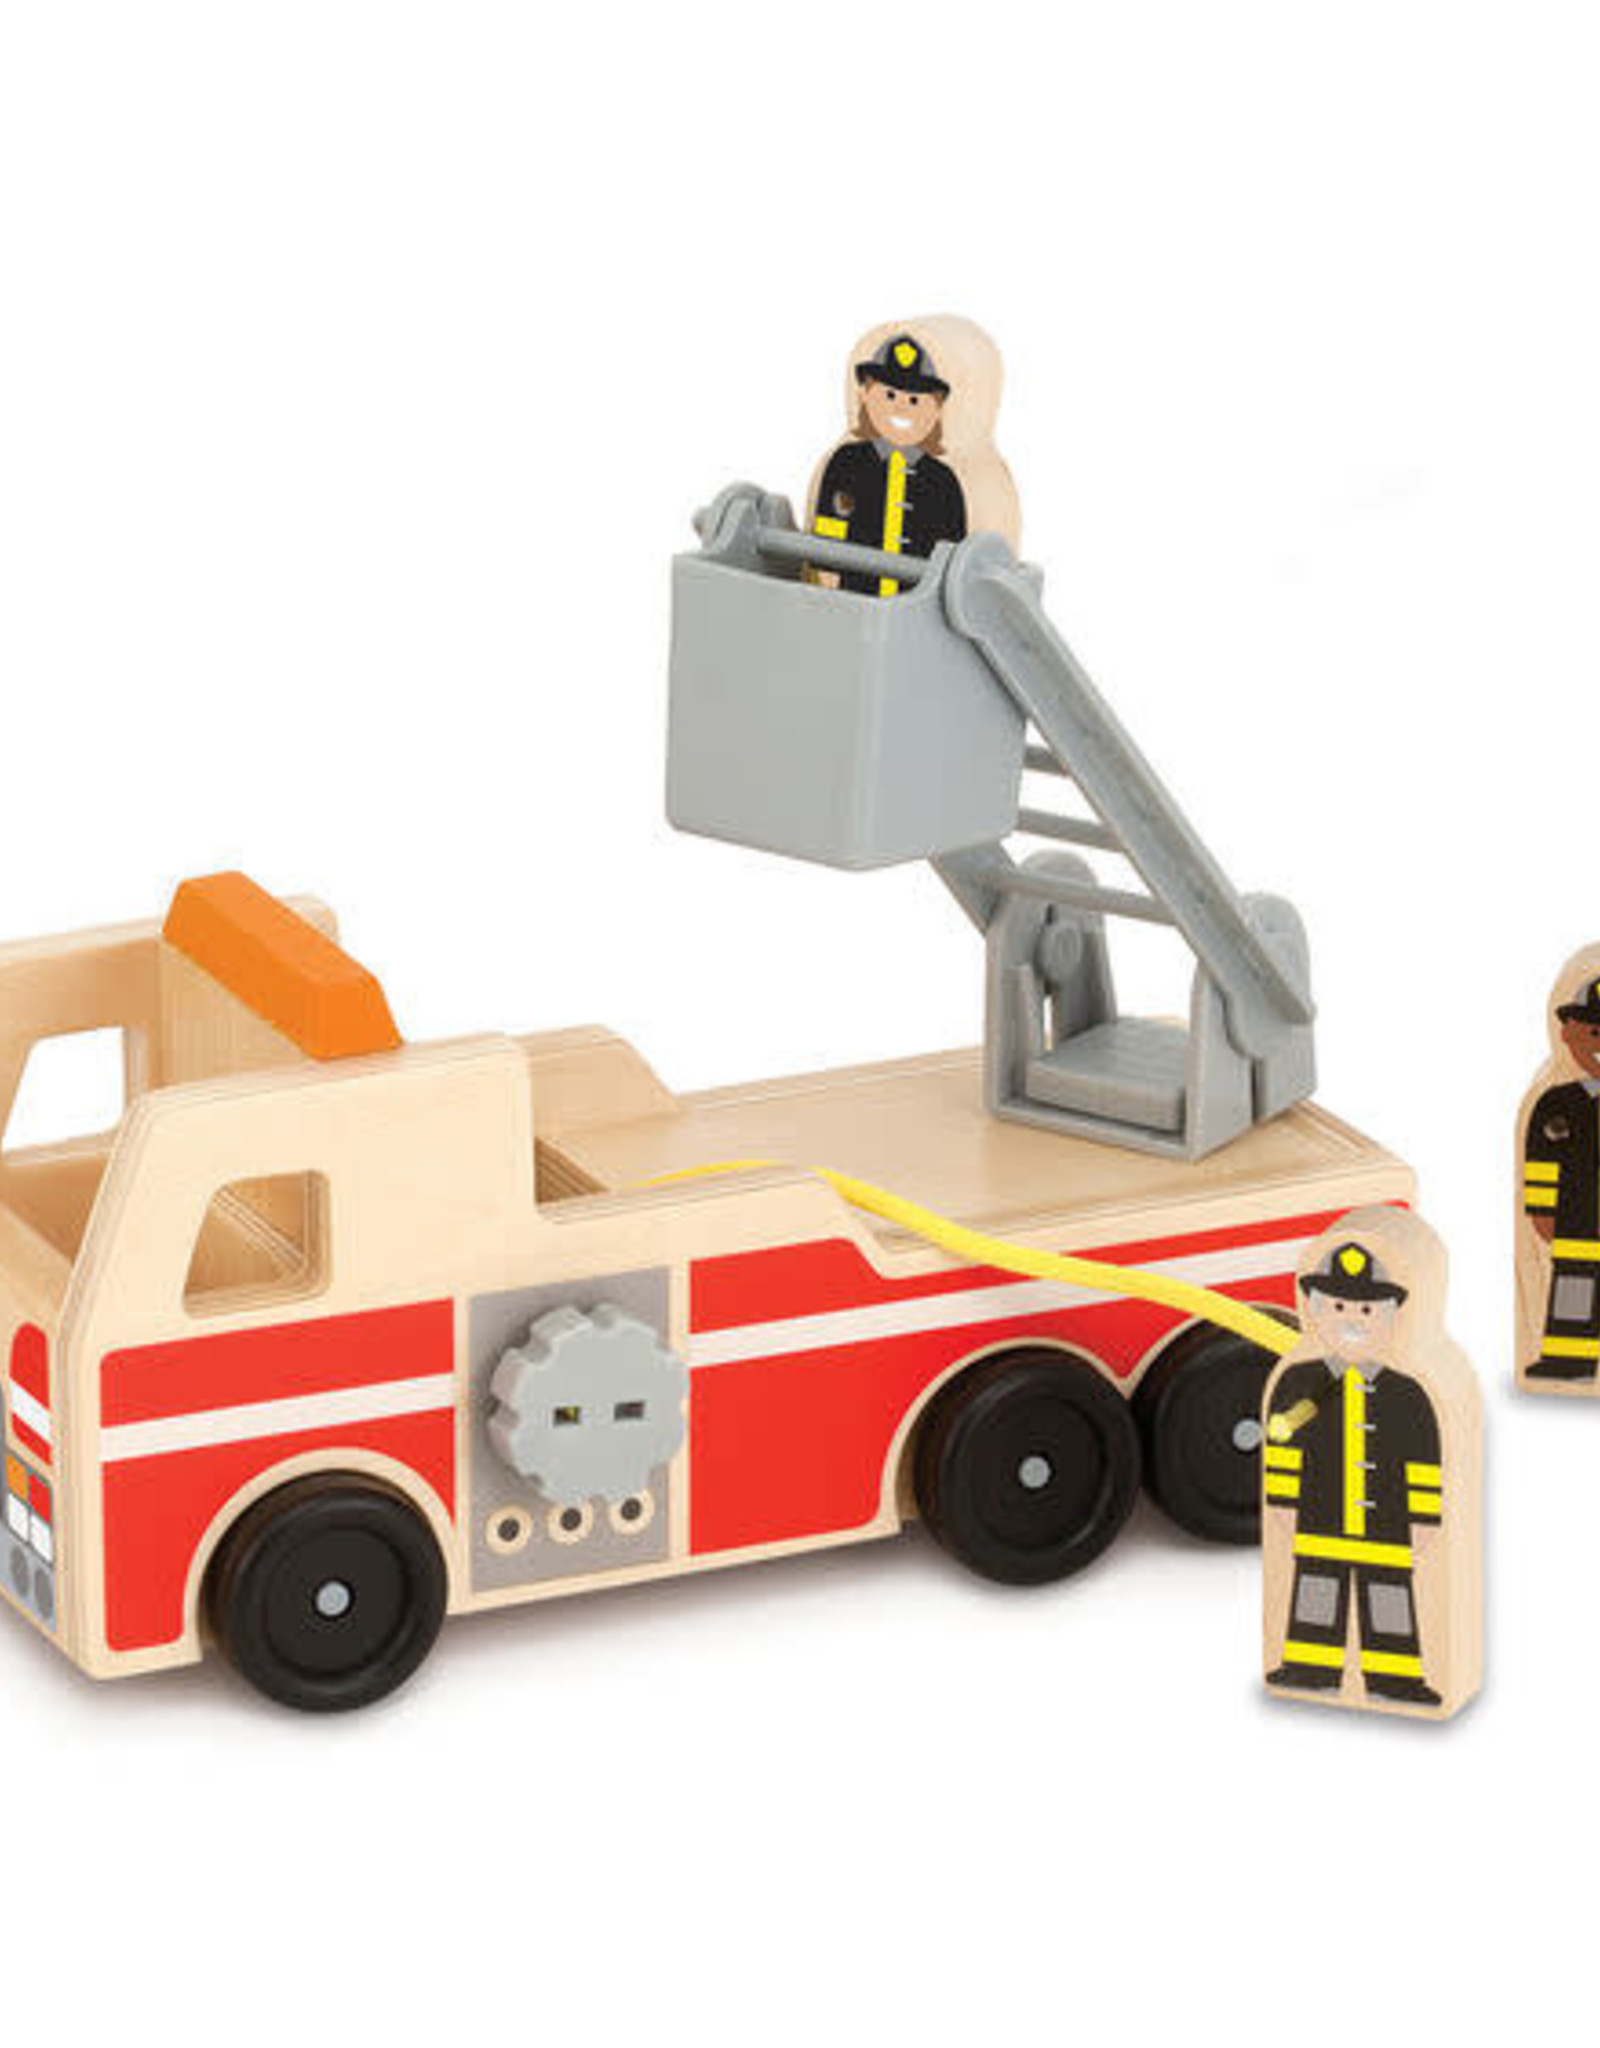 Melissa & Doug Melissa & Doug Wooden Fire Truck Play Set